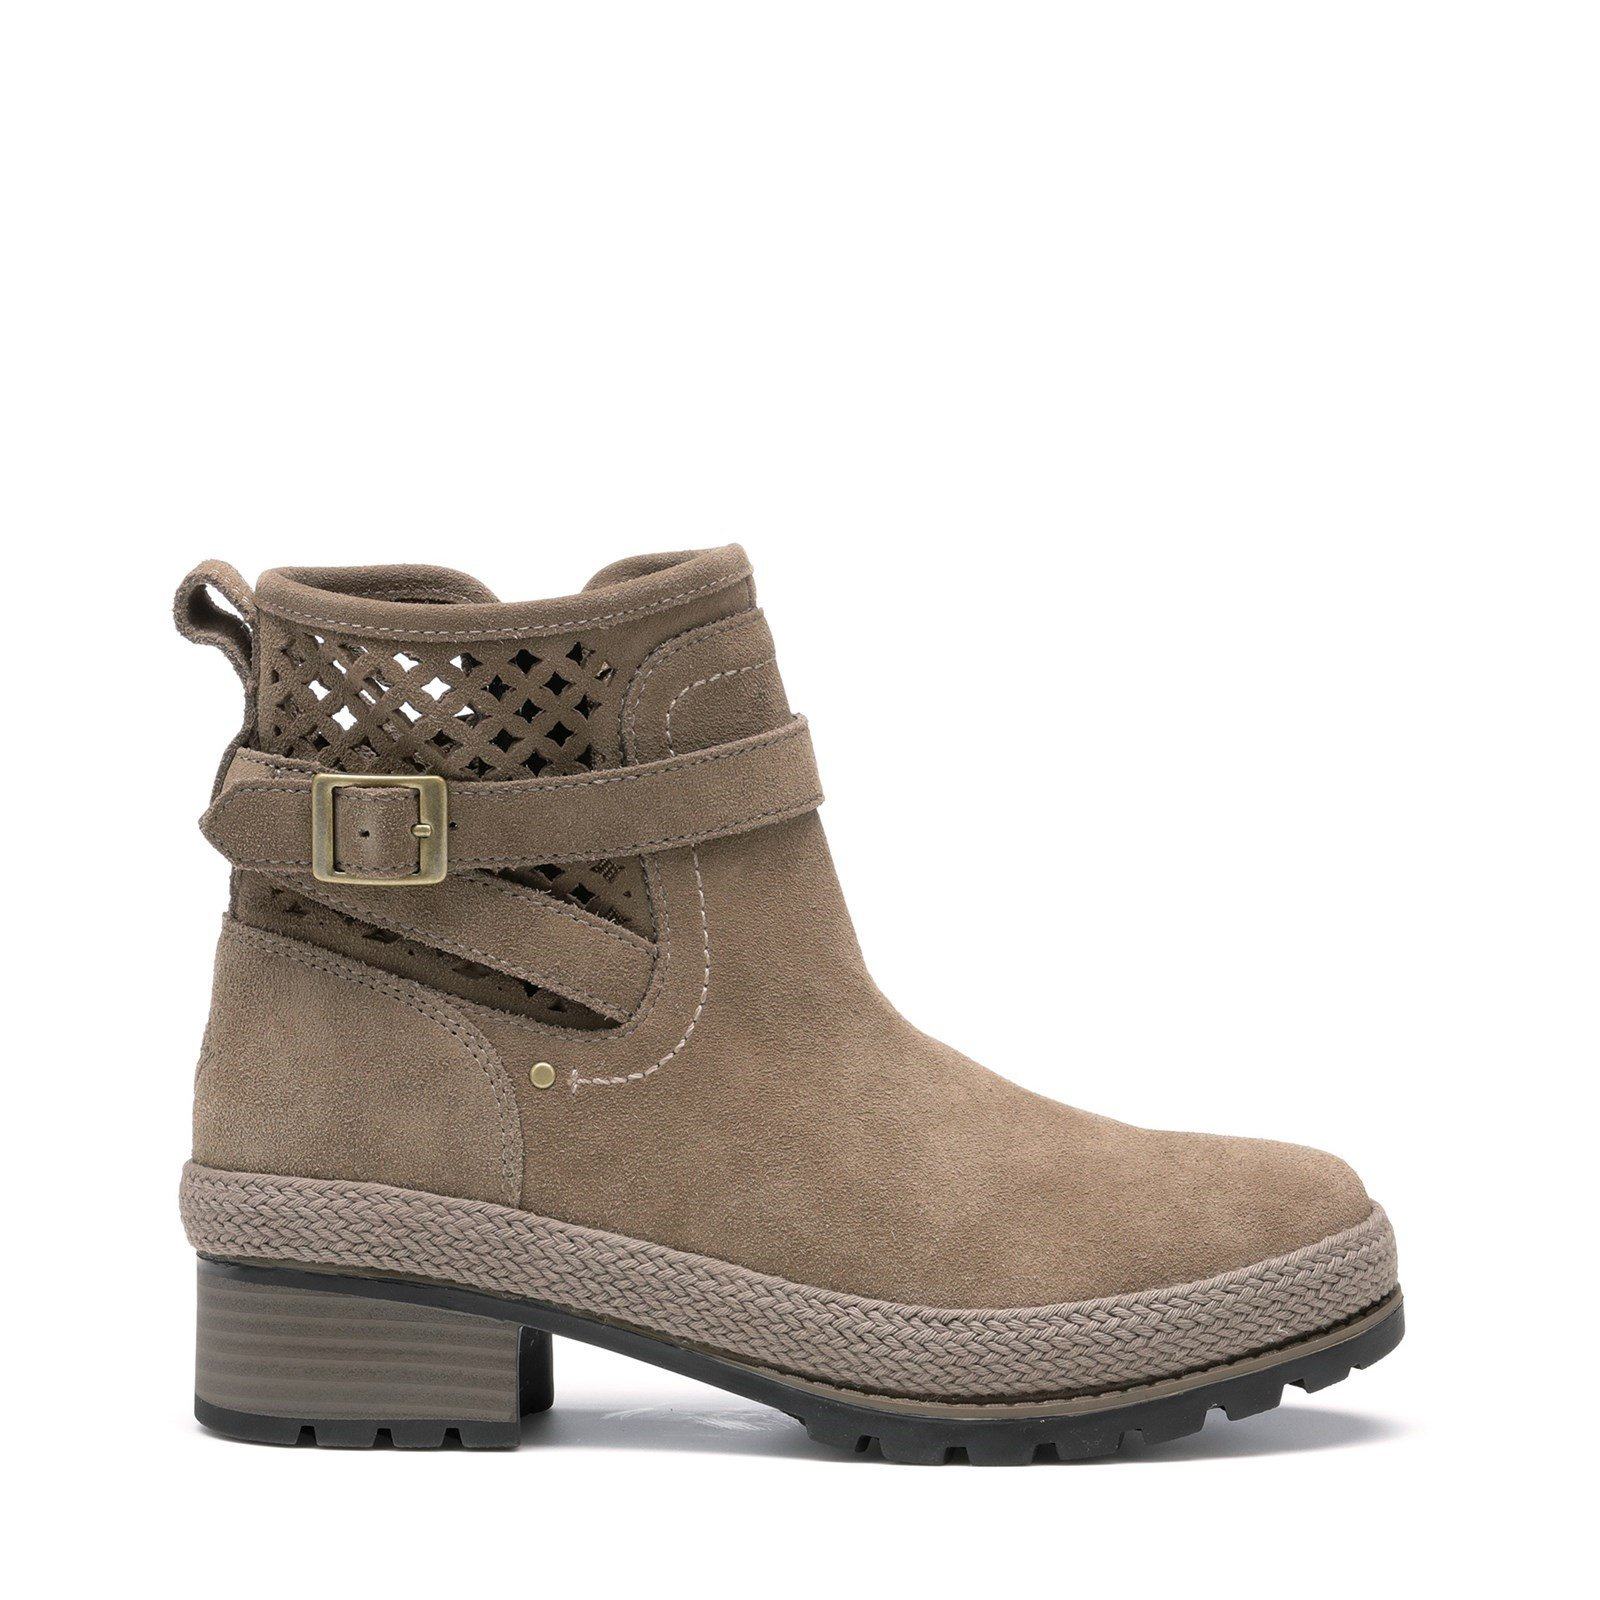 Muck Boots Women's Liberty Perforated Leather Boots Various Colours 31814 - Grey 8